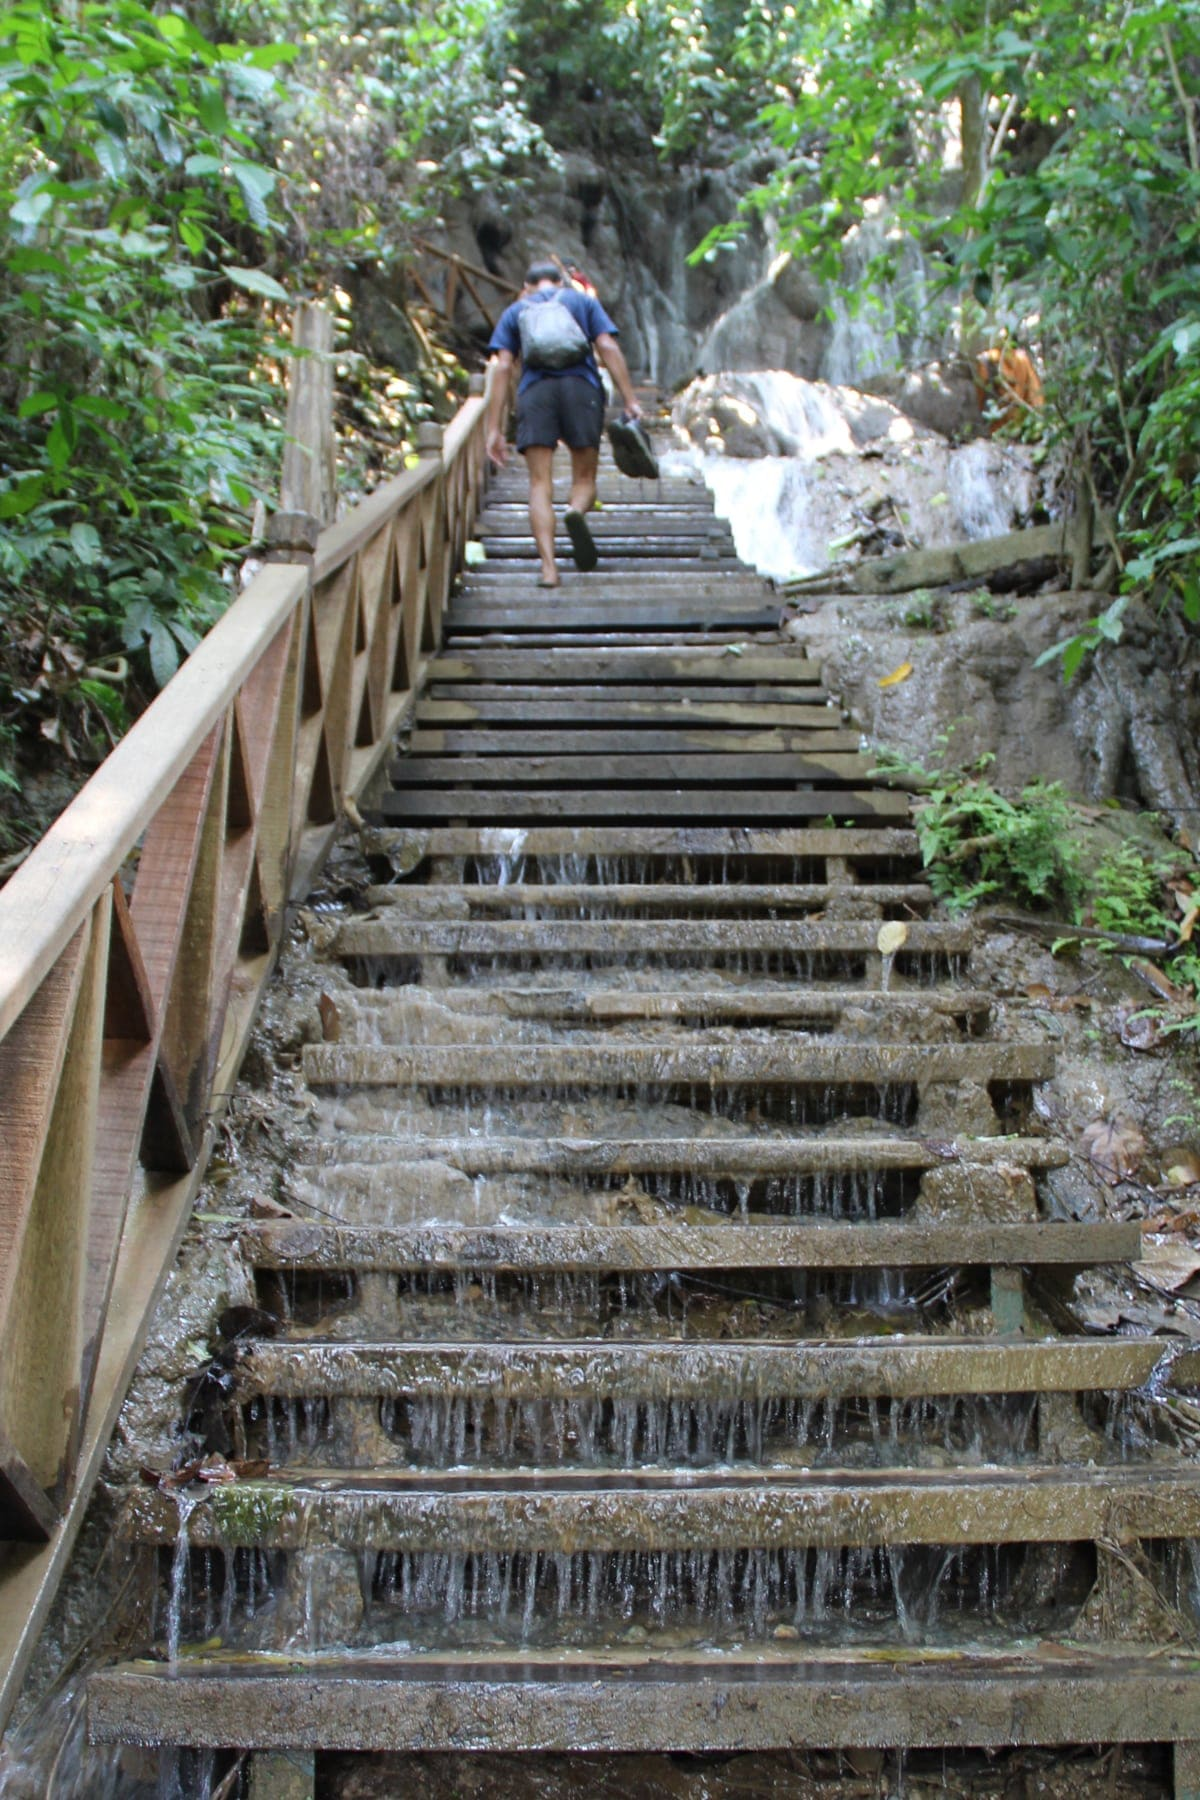 Stairs to reach top of waterfalls in Kuang Si